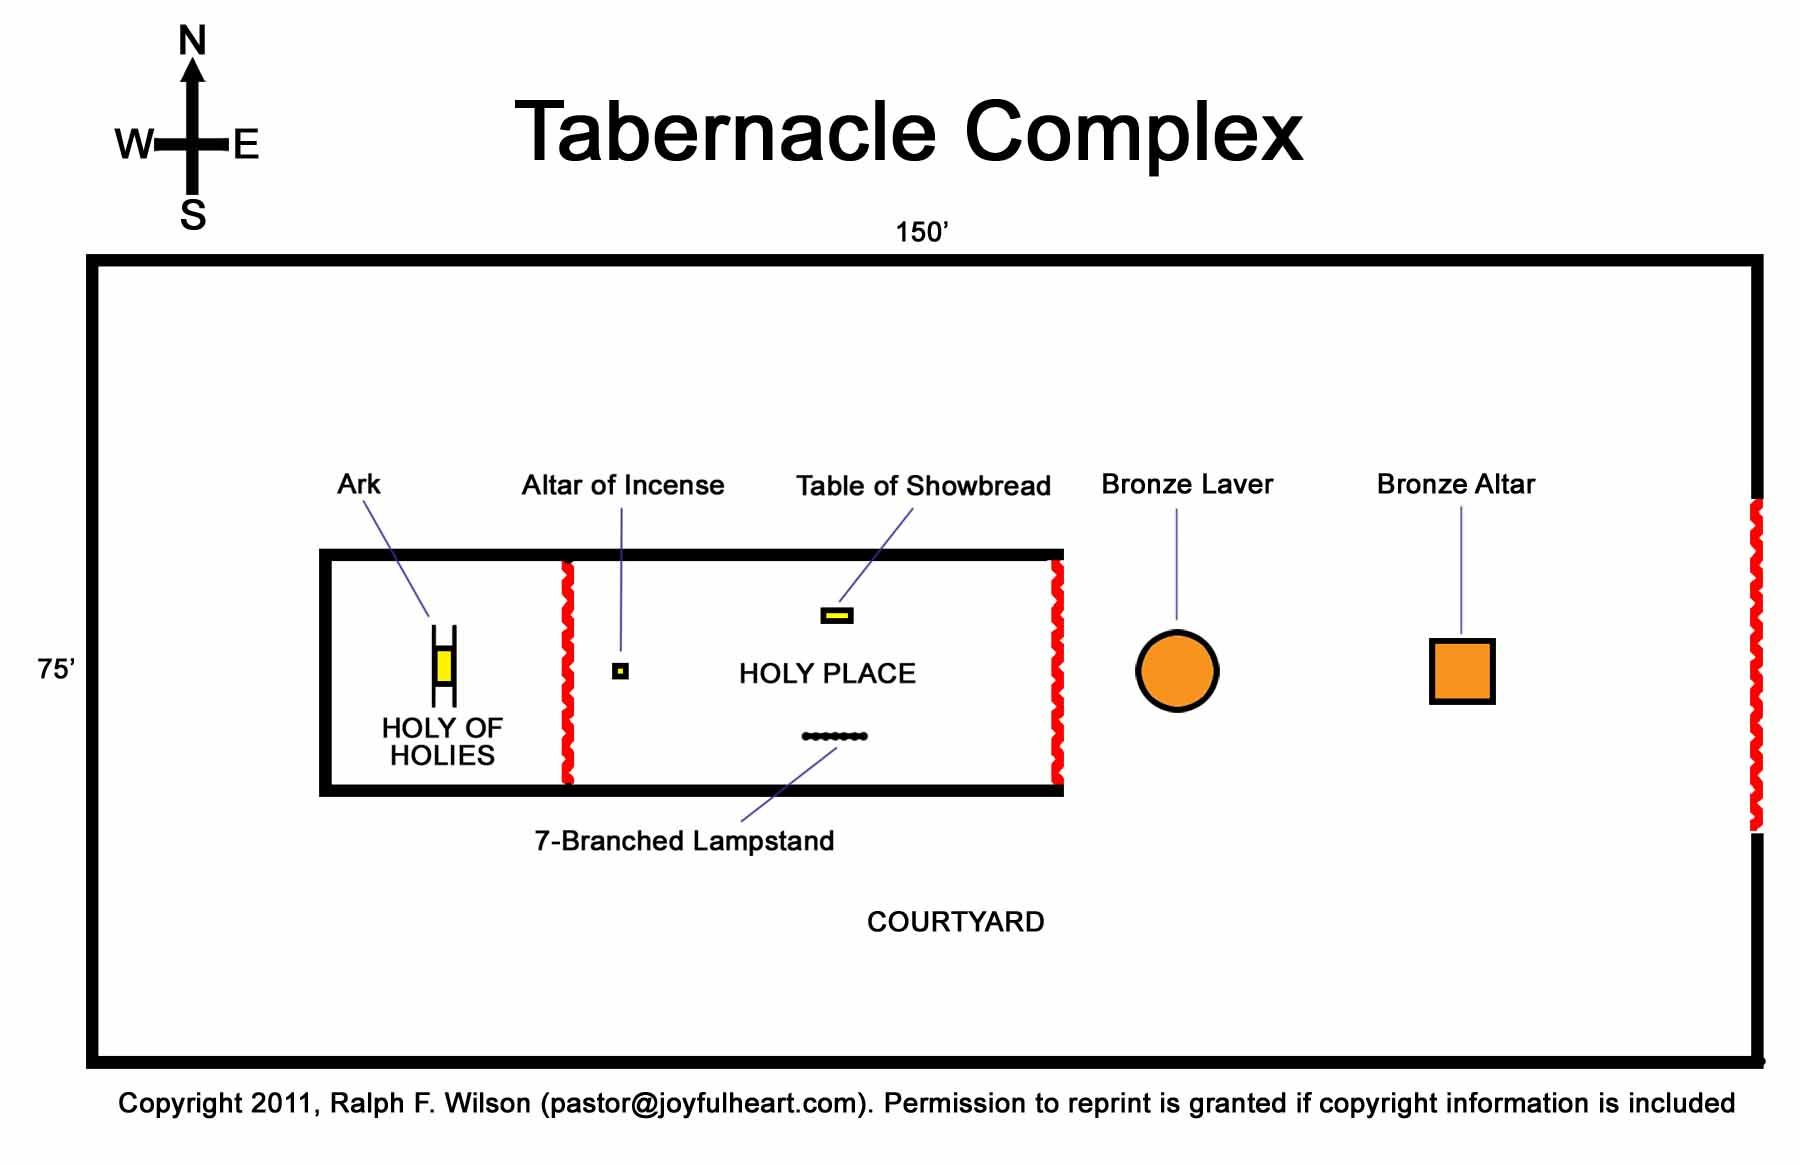 Tabernacle Complex Showing Courtyard Tabernacle And